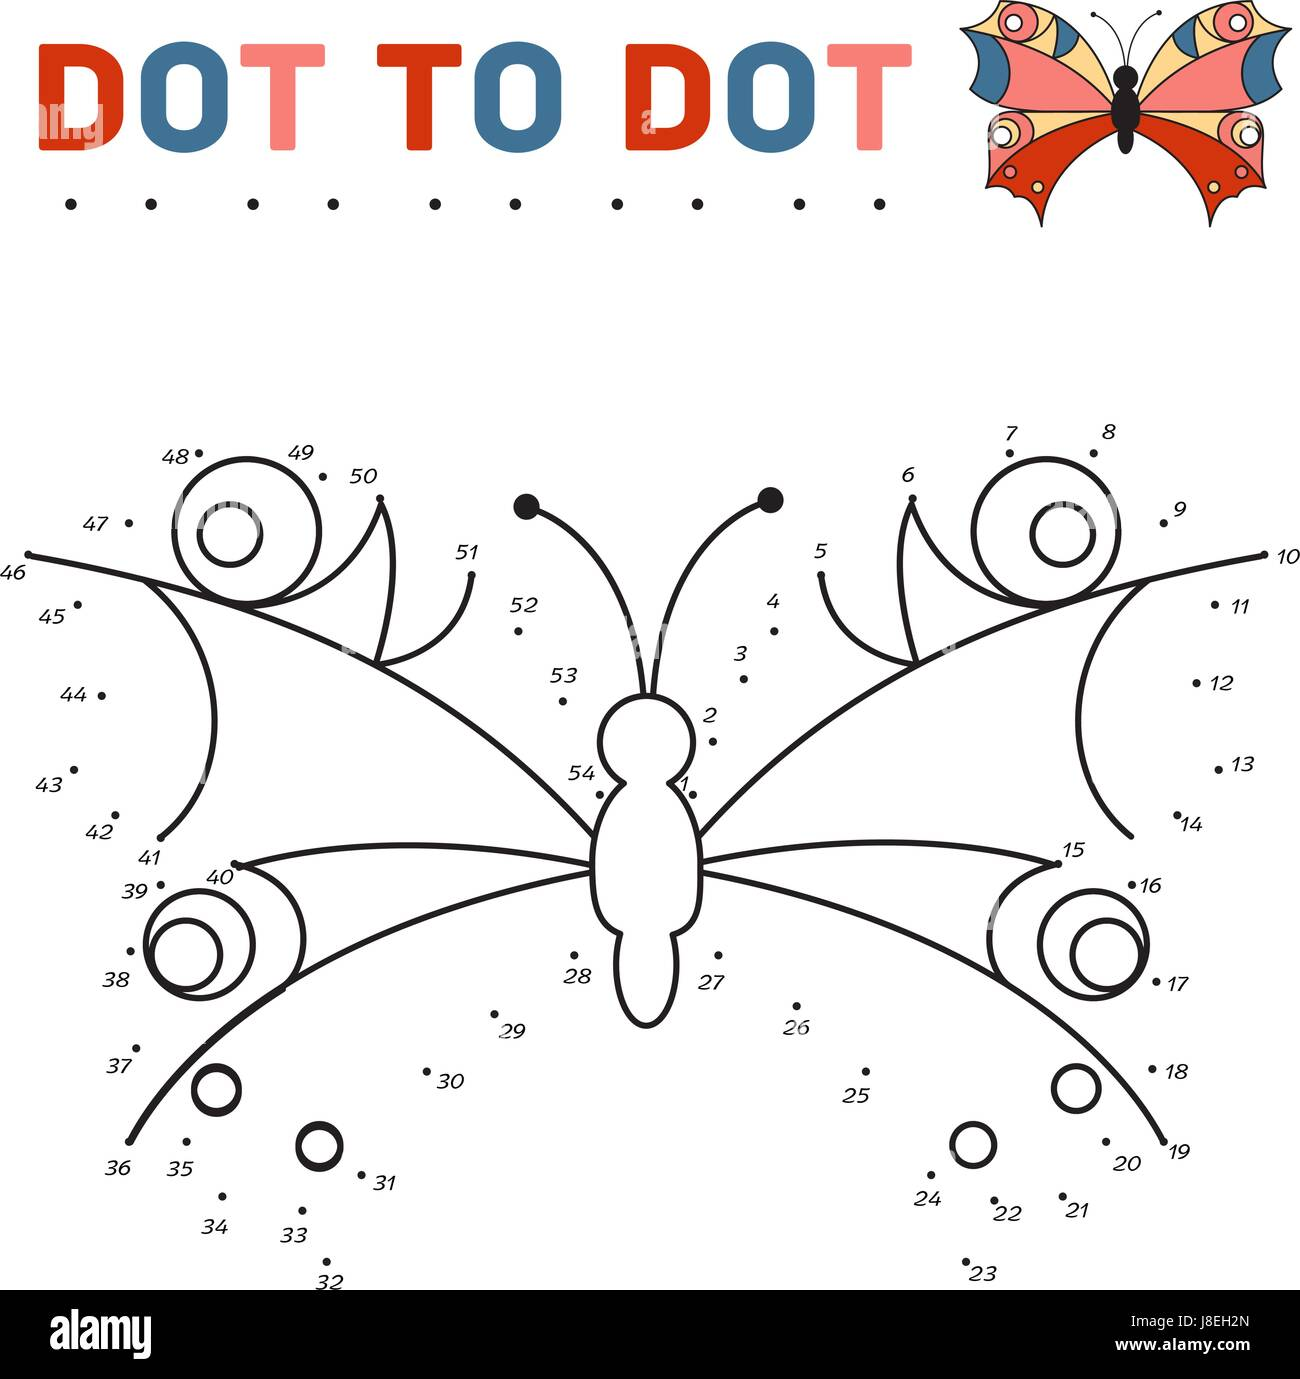 connect the dots and paint a butterfly on a sample. Game for children.  - Stock Image